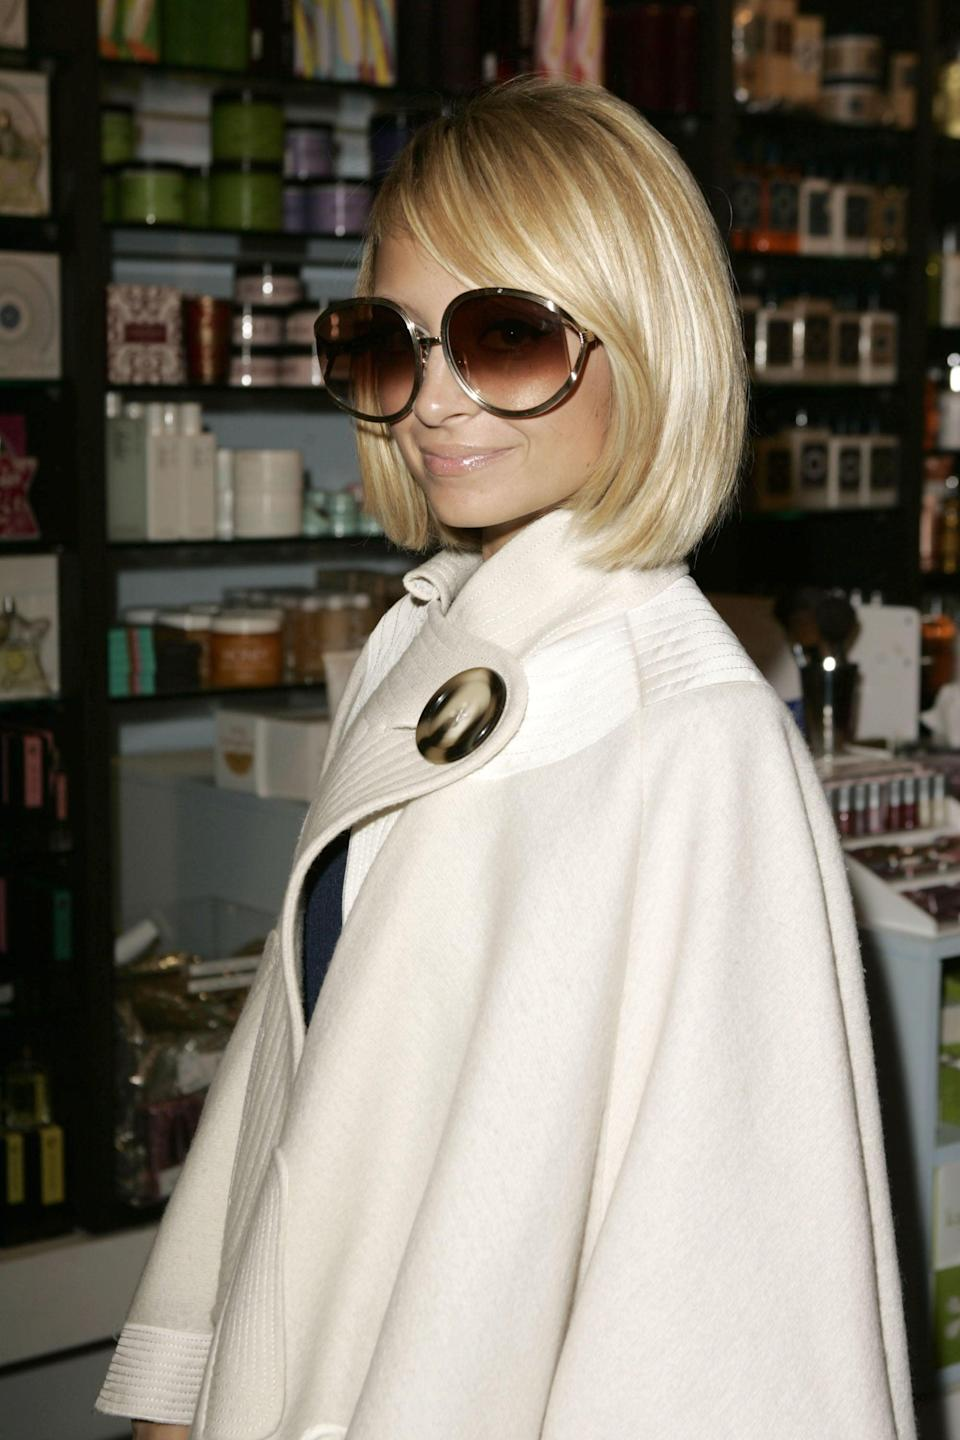 """<p>Cape coats are back, and they're better than ever. <a class=""""link rapid-noclick-resp"""" href=""""https://www.popsugar.com/Nicole-Richie"""" rel=""""nofollow noopener"""" target=""""_blank"""" data-ylk=""""slk:Nicole Richie"""">Nicole Richie</a> wore a heavy woolen style with a single button back in 2005, and the 2019 versions come in tweed, leopard print, and classic shades of camel, as well as cape-trench hybrids.</p>"""